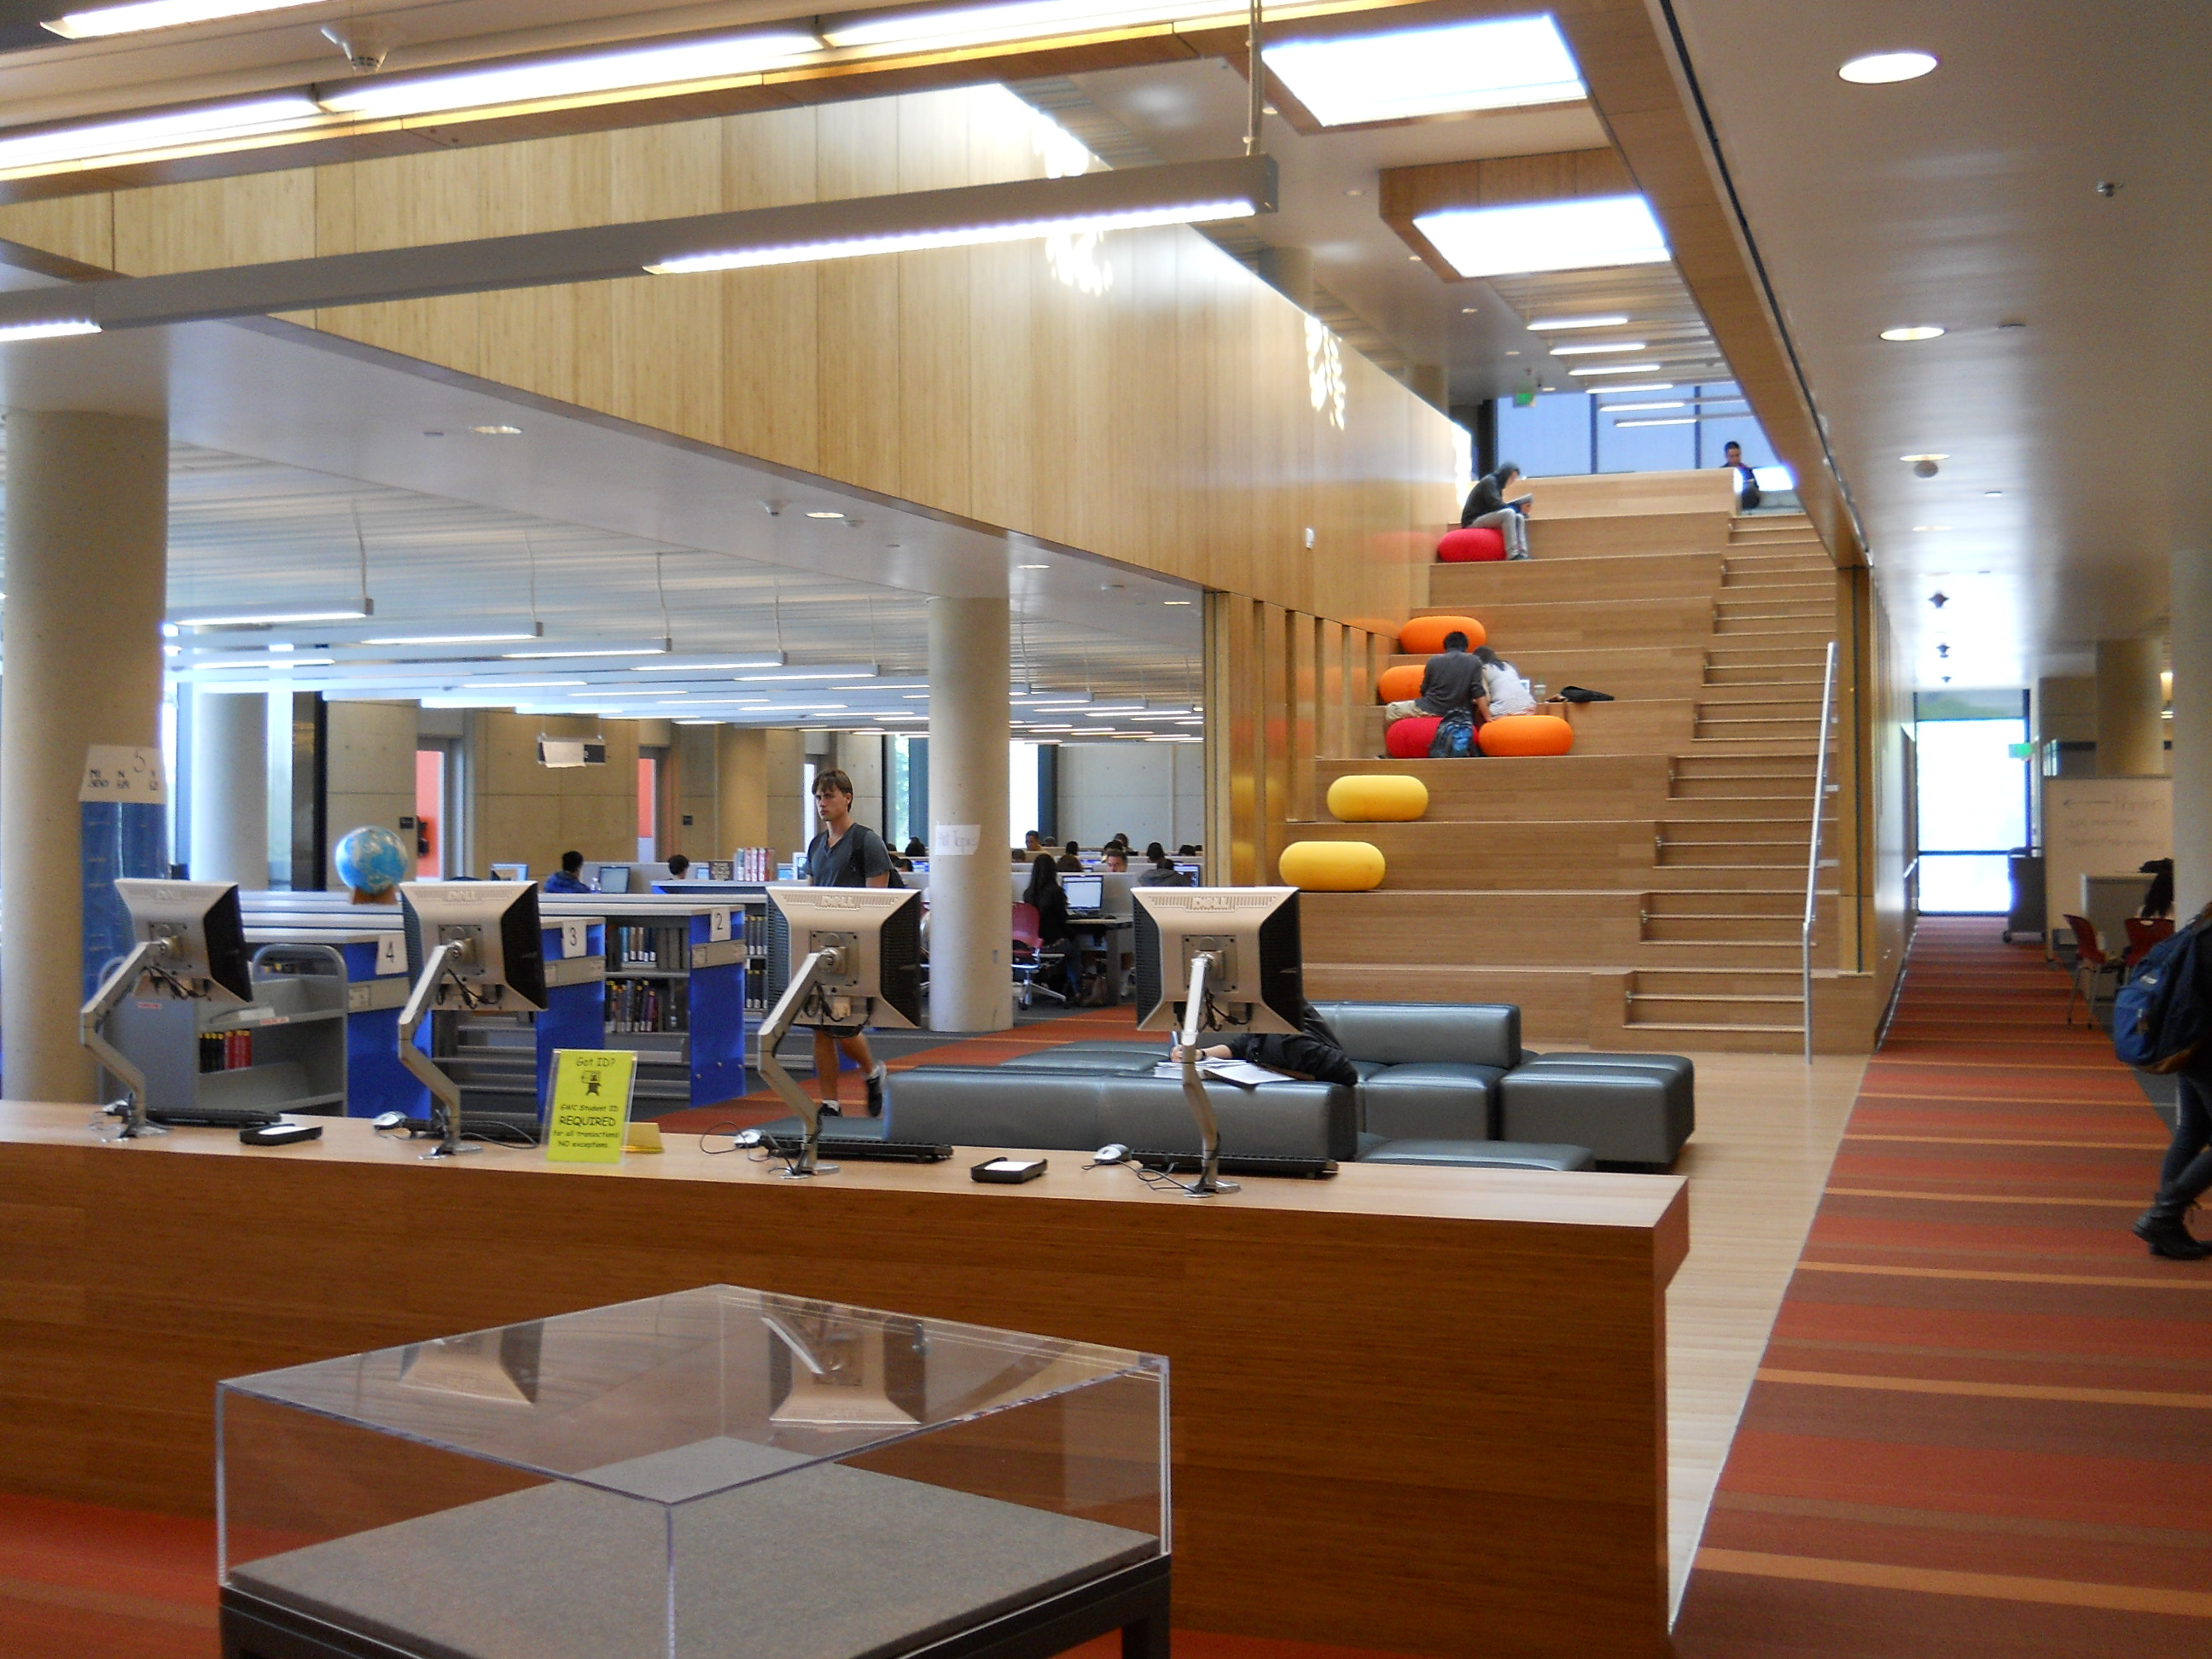 Crsi Projects Zoom Image View Original Size Gallery Of Golden West College